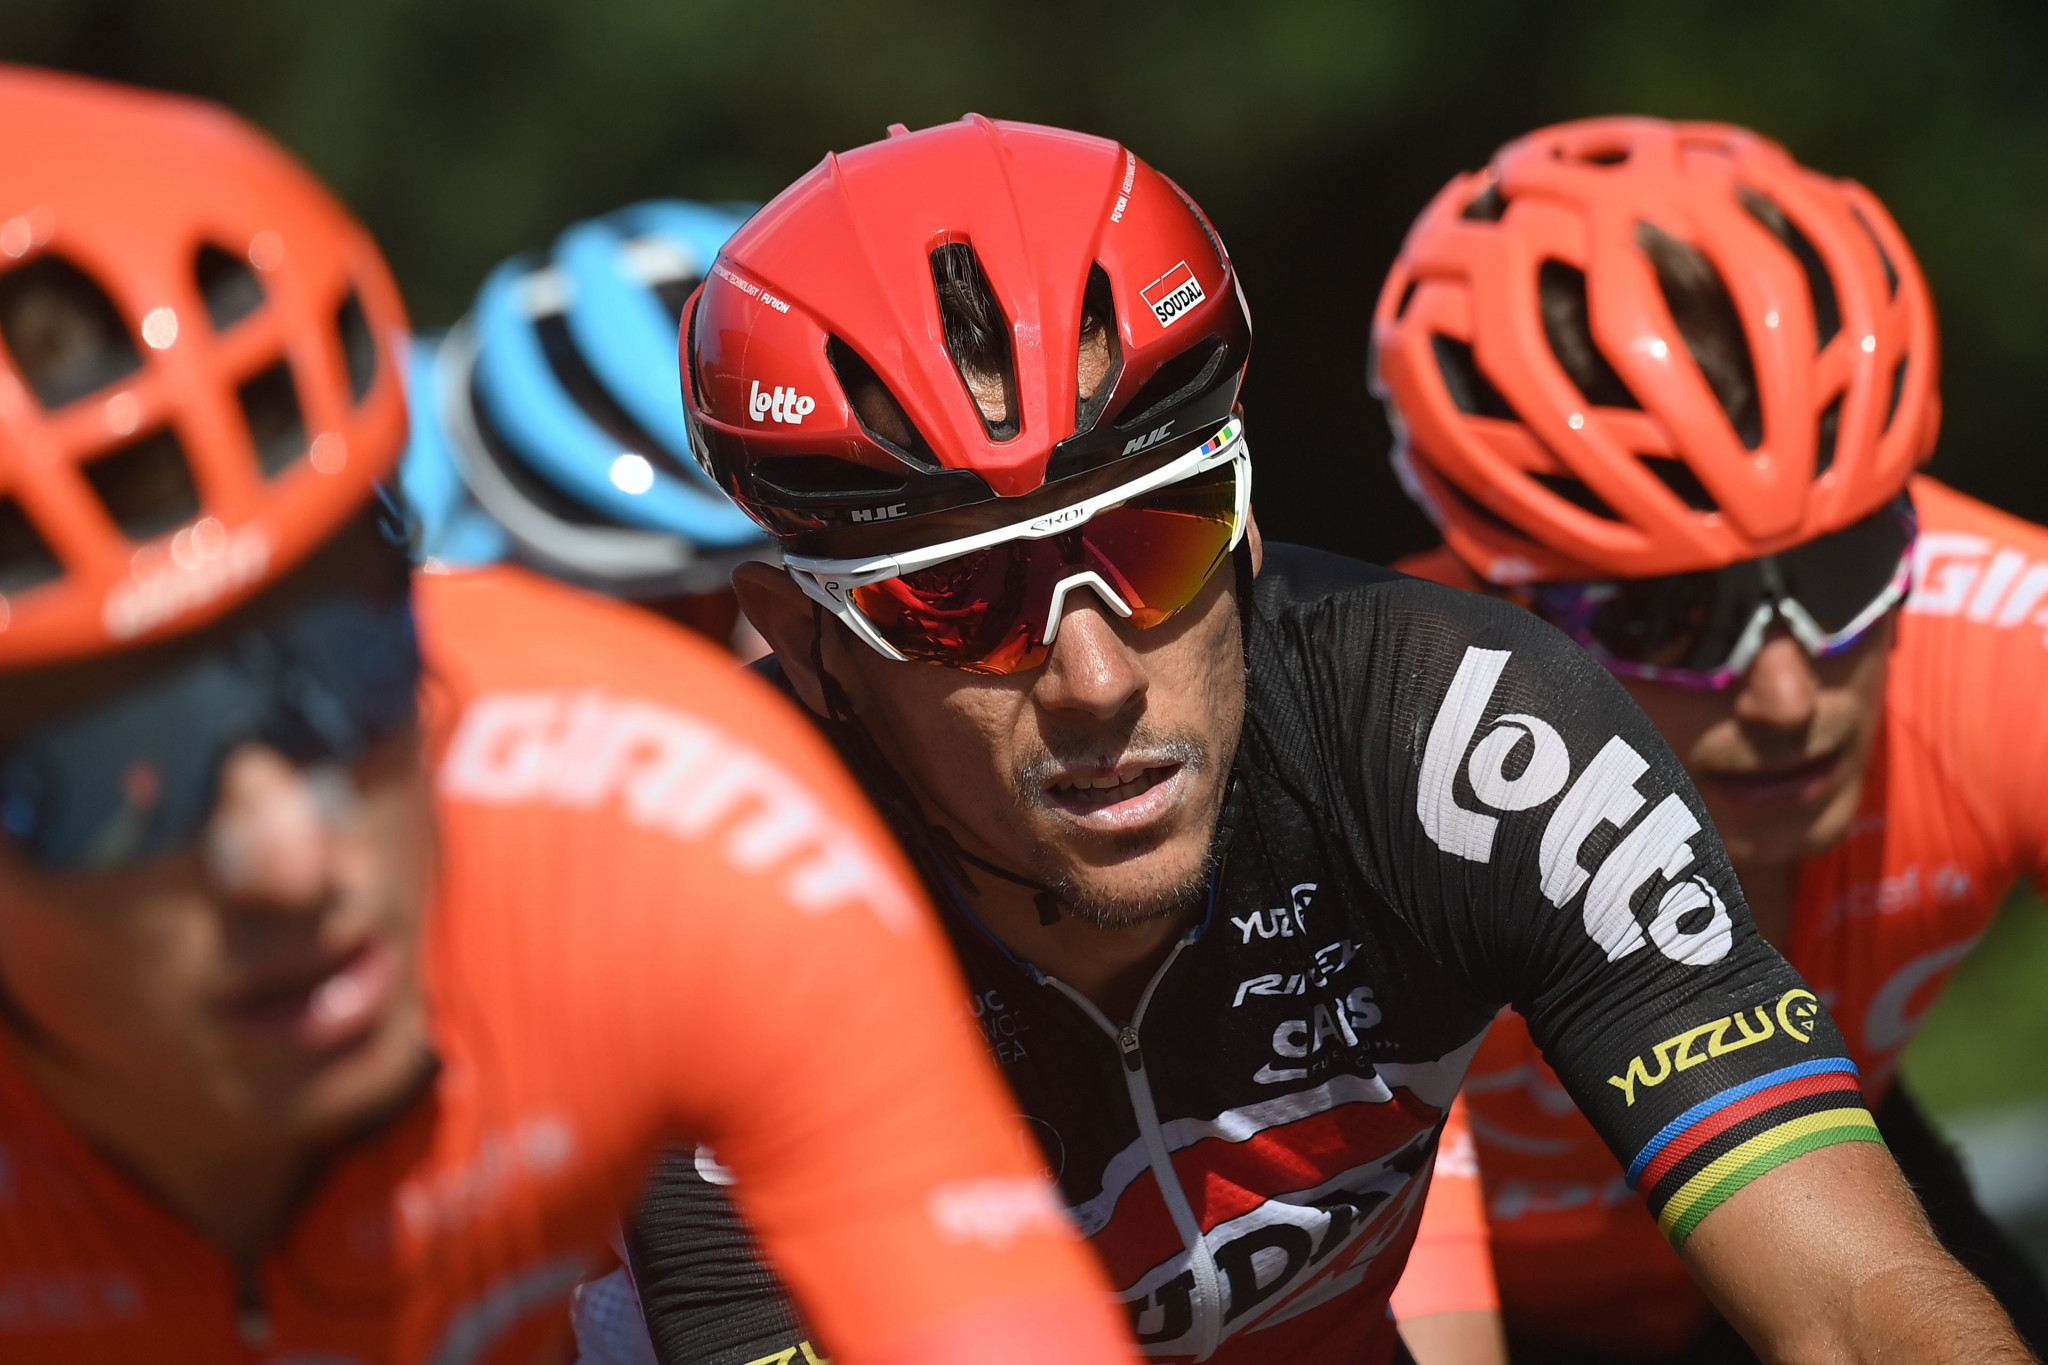 Lotto-Soudal riders Gilbert and Degenkolb out of Tour de France